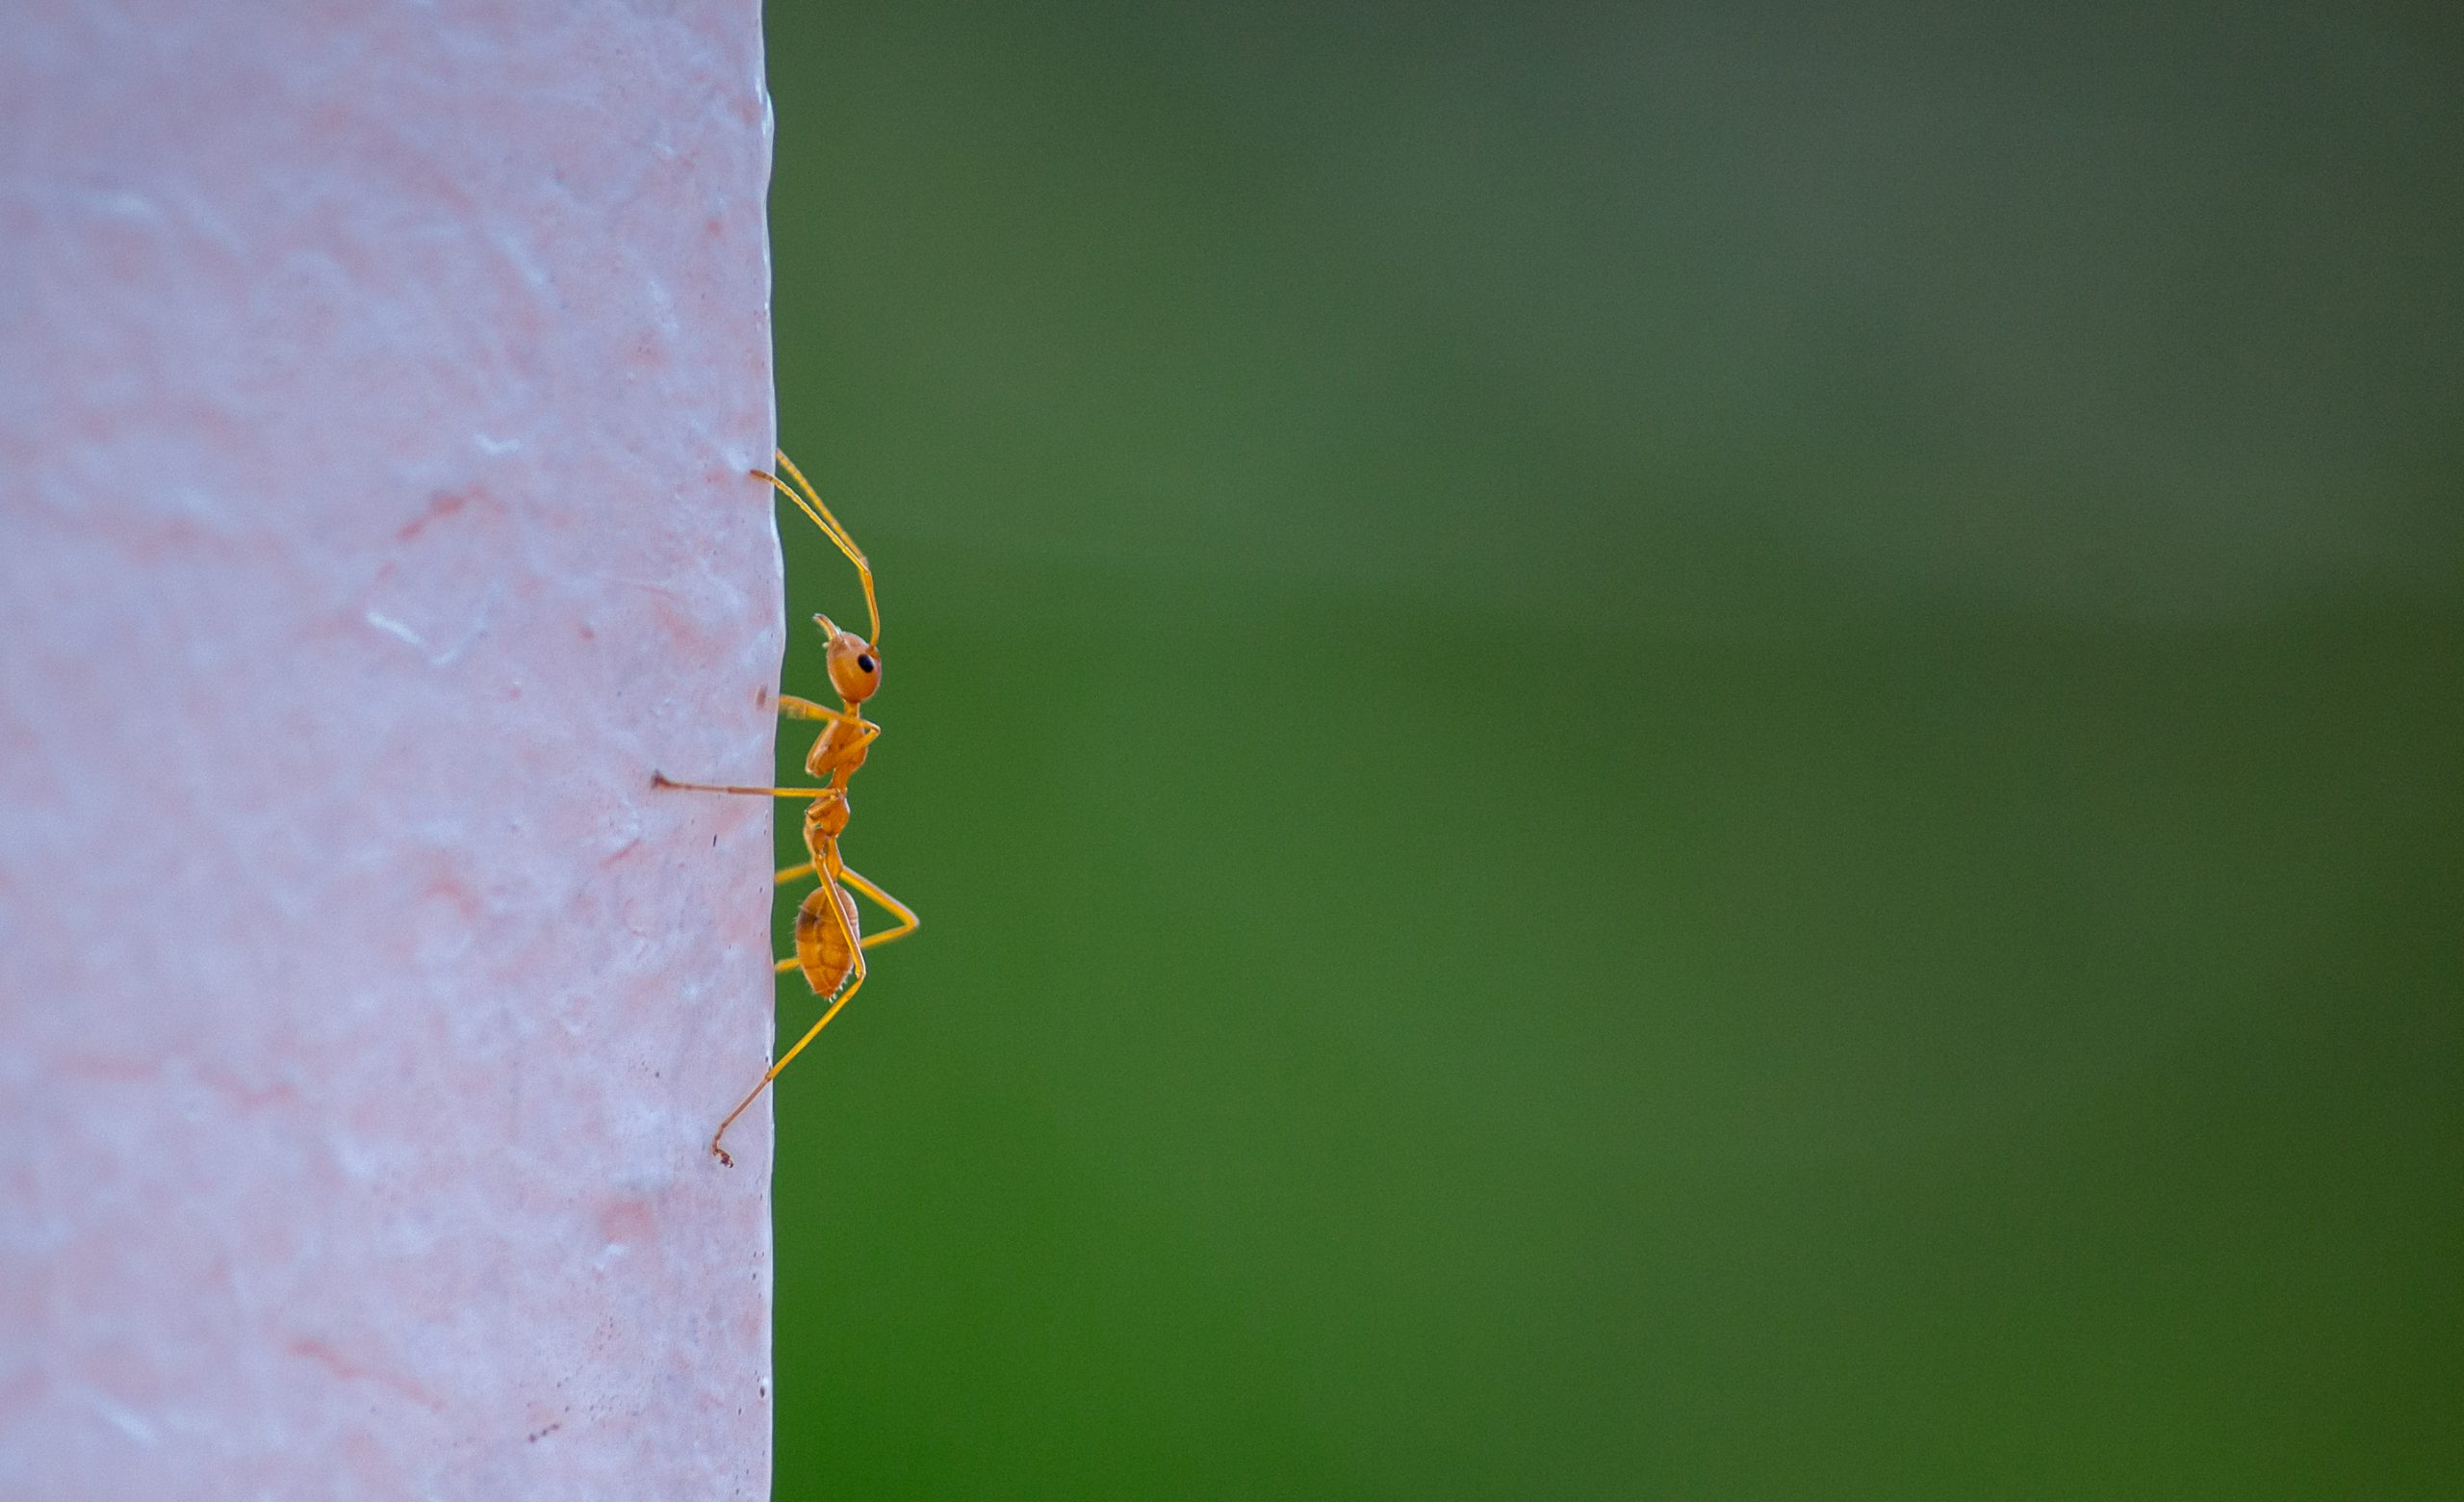 Ant on wall